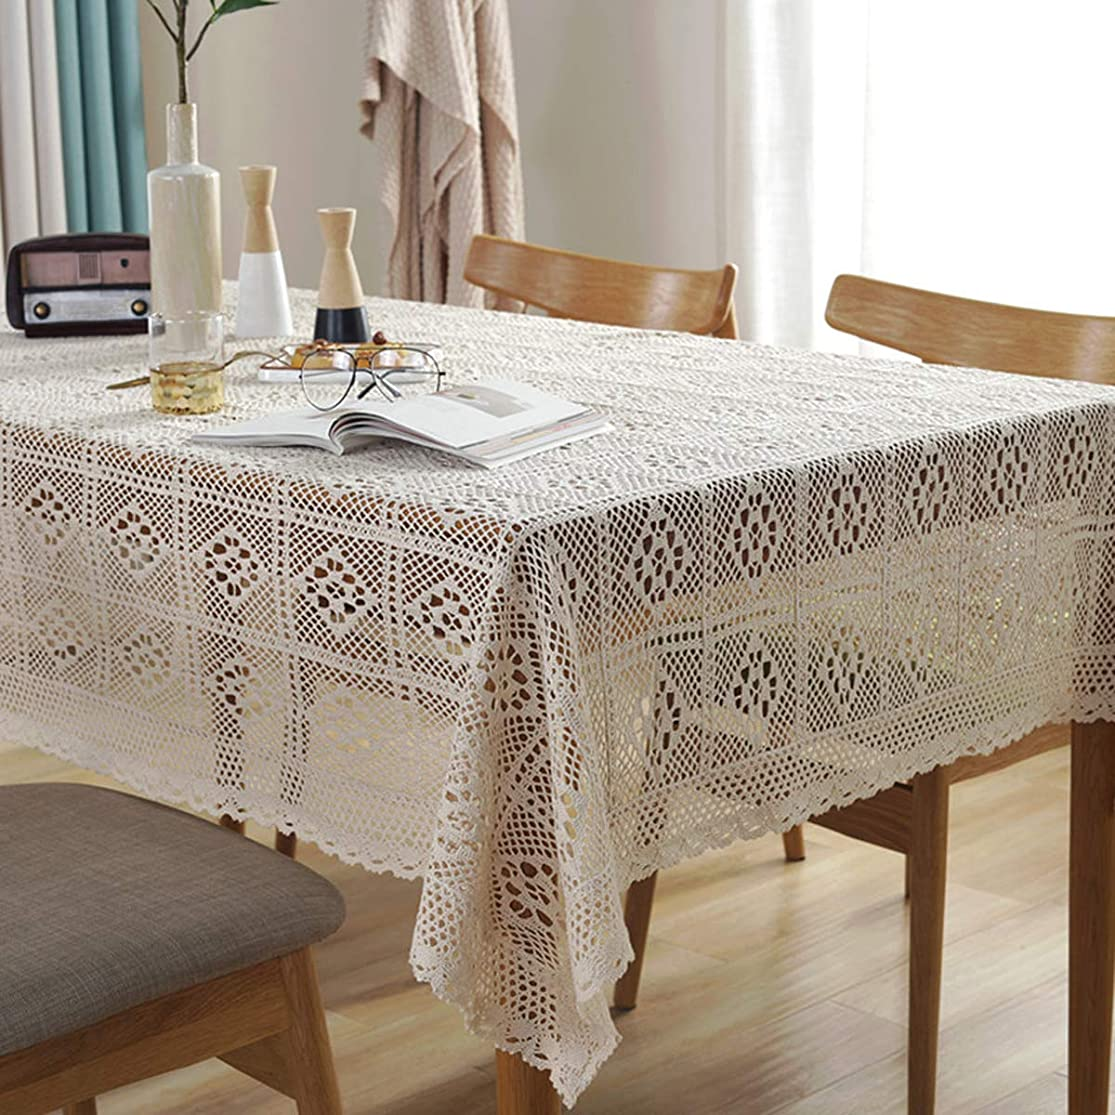 Bringsine Vintage Handmade Crochet Diamond Tablecloth Decorative Macrame Lace Table Cover Layer for Kitchen Dinning Pub Bedside Tabletop Sheet Decoration(Beige, Rectangle/Oblong, 55 x 71 Inch) bccouyro0